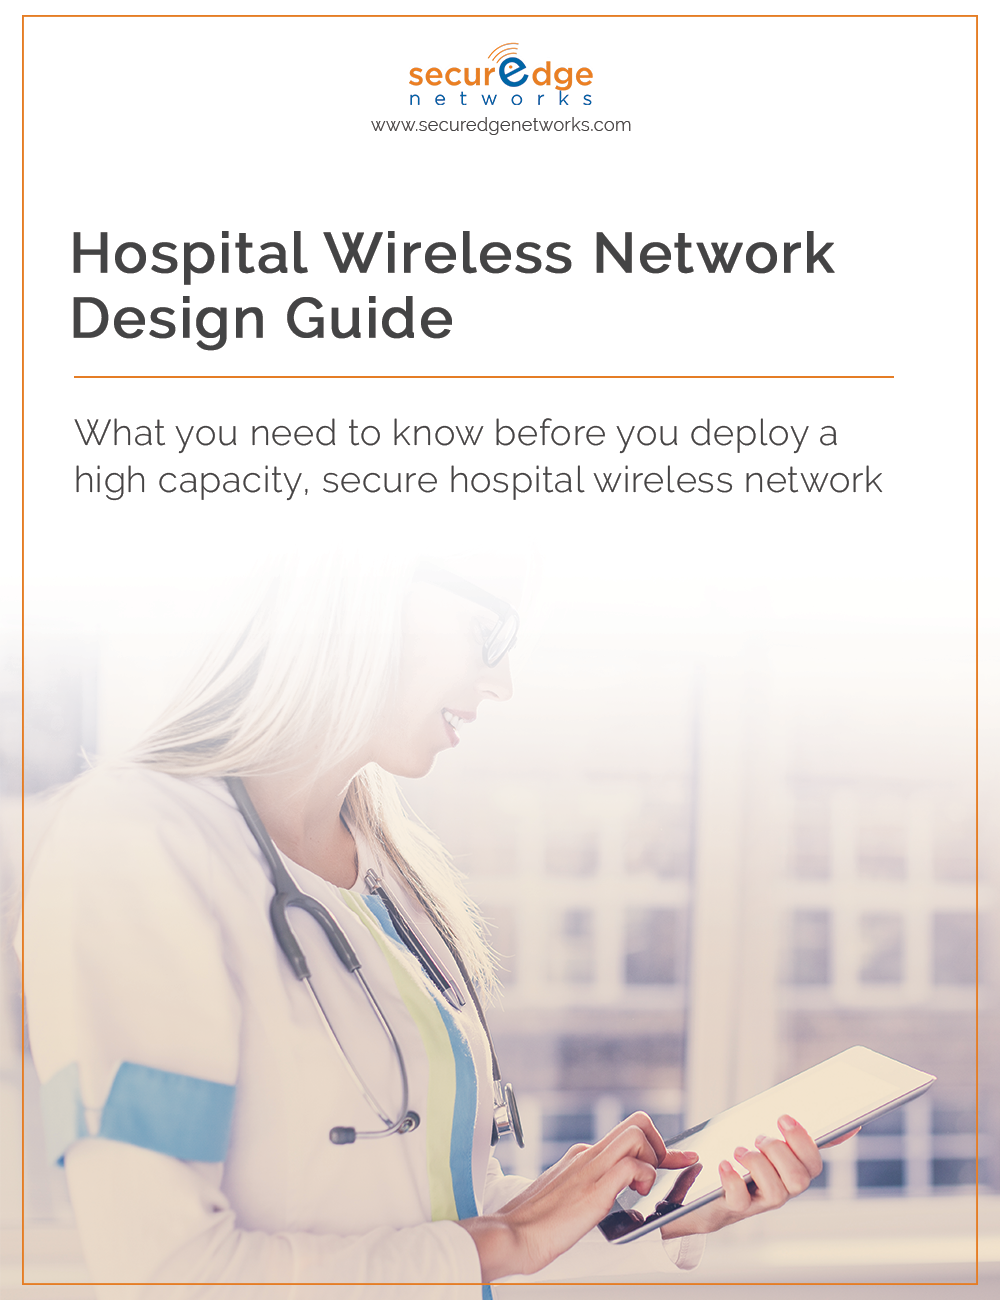 hospital-design-guide-update-cover-2.png